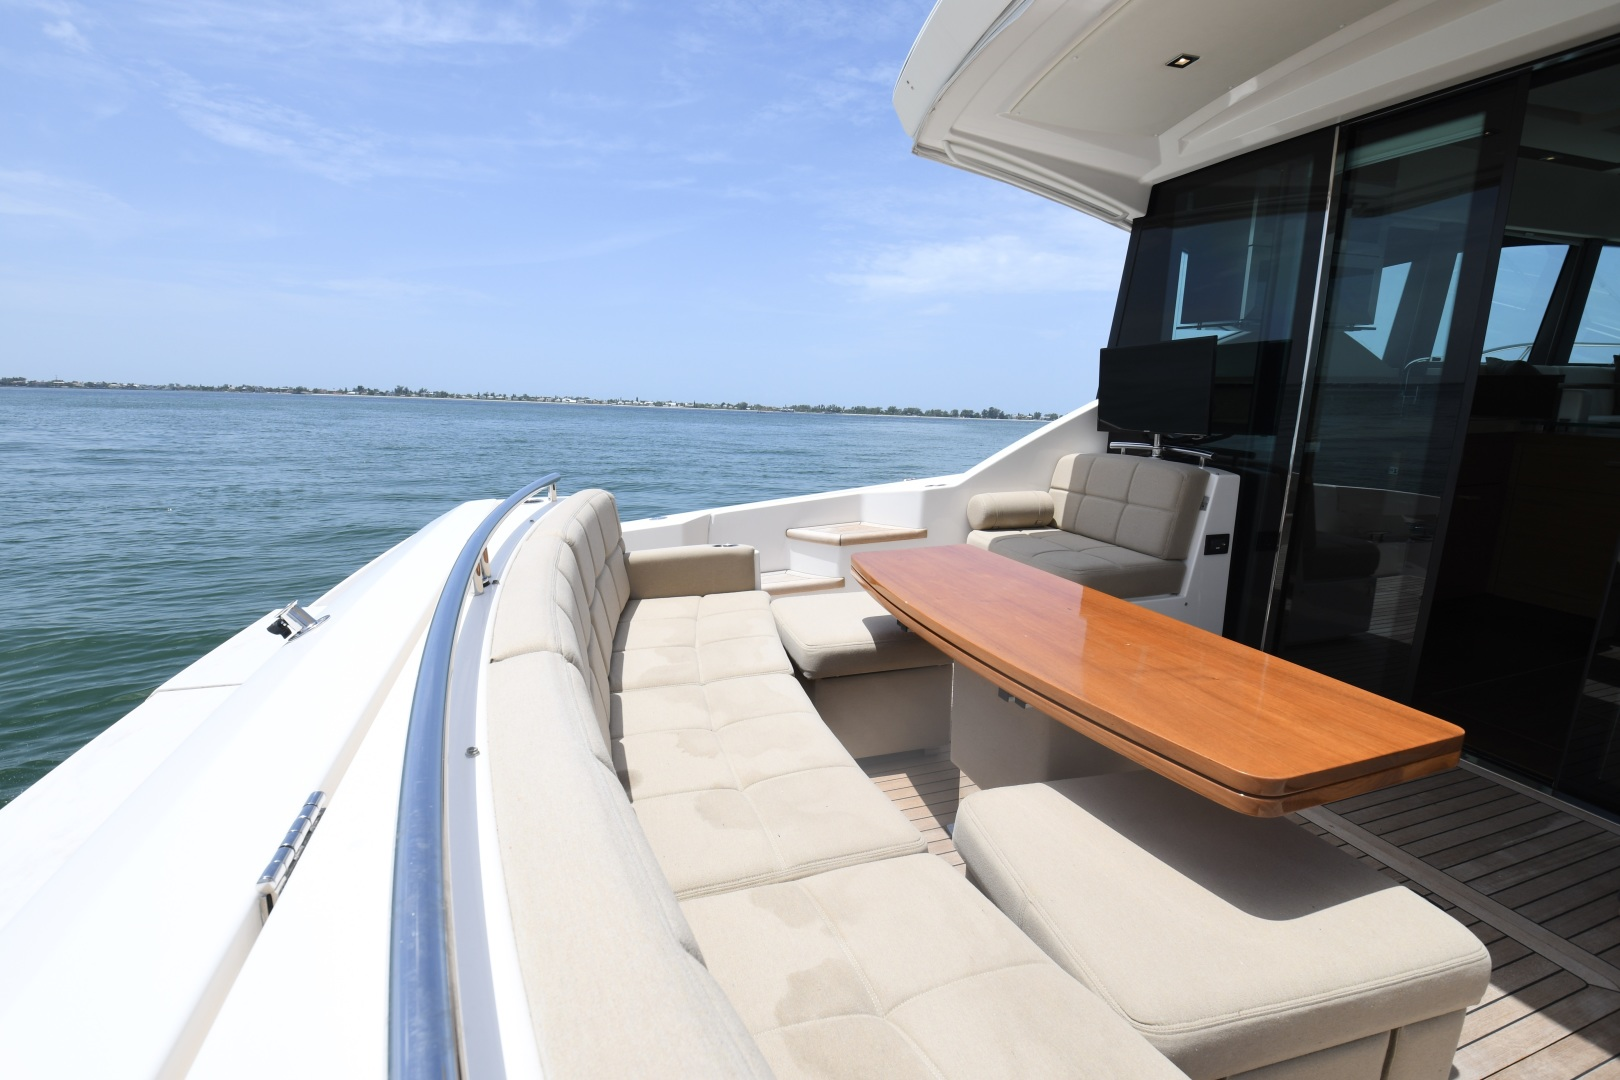 Tiara-50 Coupe 2014-Hoosier Daddy Anna Maria-Florida-United States-2014 Tiara 50 Coupe  Hoosier Daddy  Cockpit-1450869 | Thumbnail